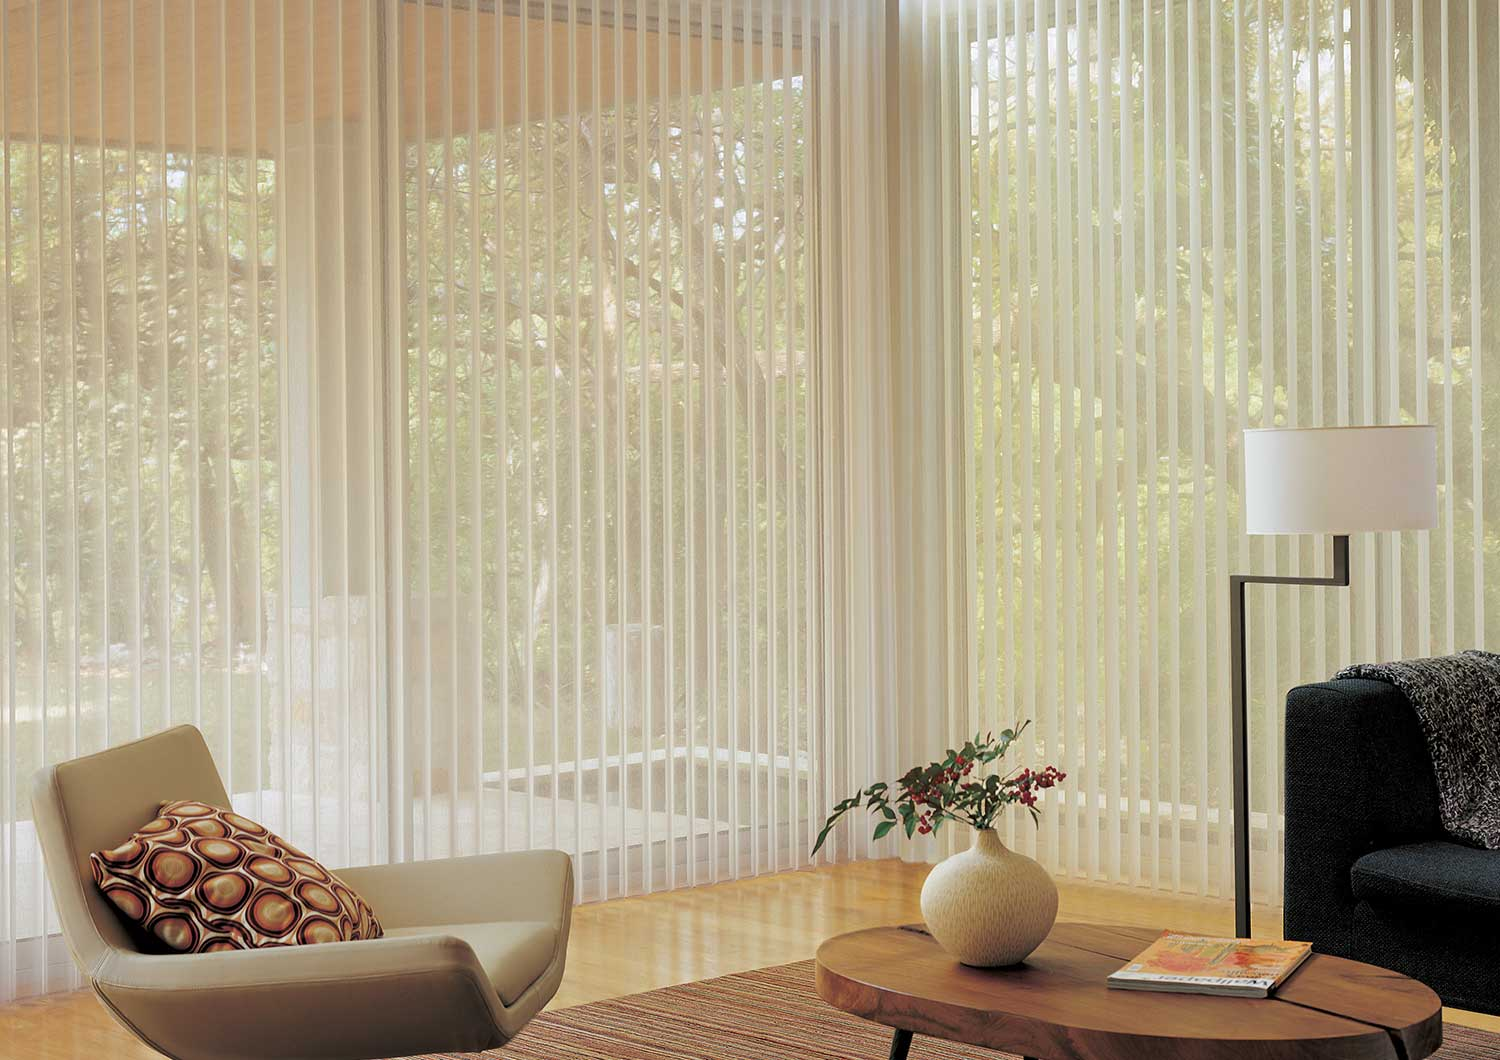 Luminette Allows For Light Control With Privacy Sheers